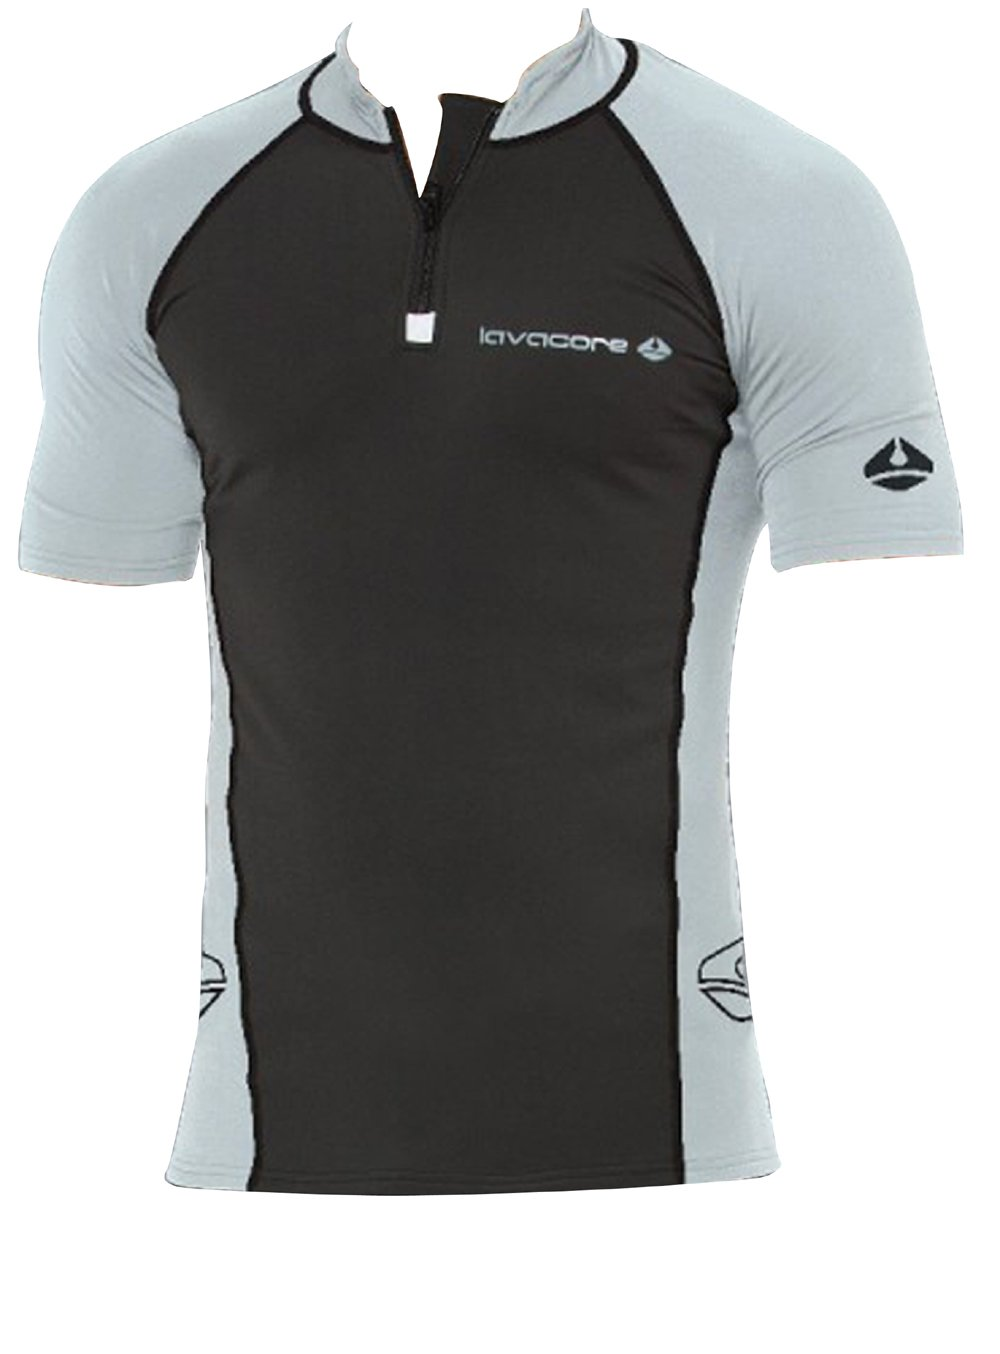 LAVACORE LAVASKIN MEN'S SHORT SLEEVE SHIRT RASH GUARD 85%OFF